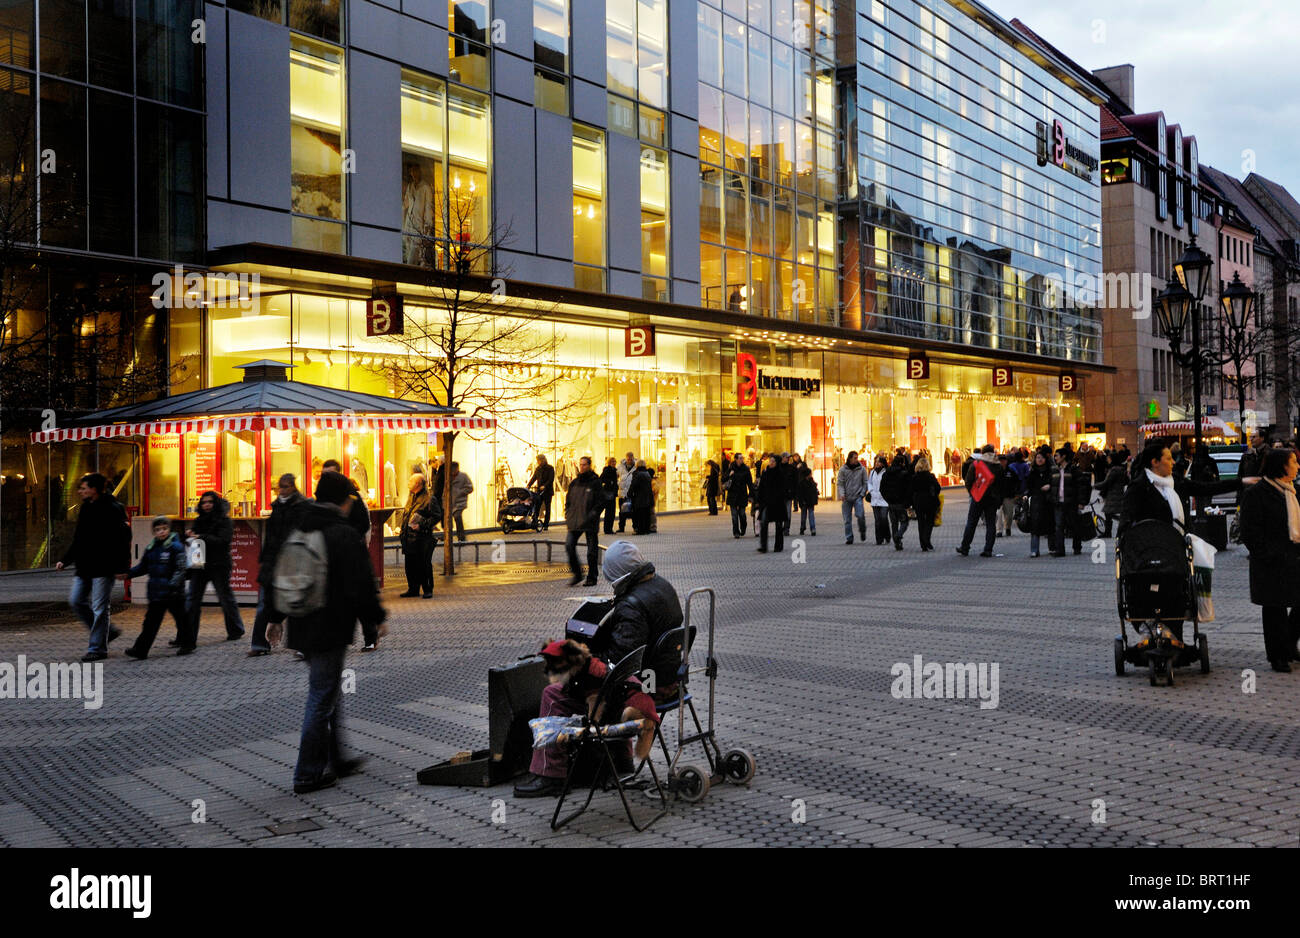 Beggar in front of a store, pedestrian area, Nuremberg, Bavaria, Germany, Europe - Stock Image